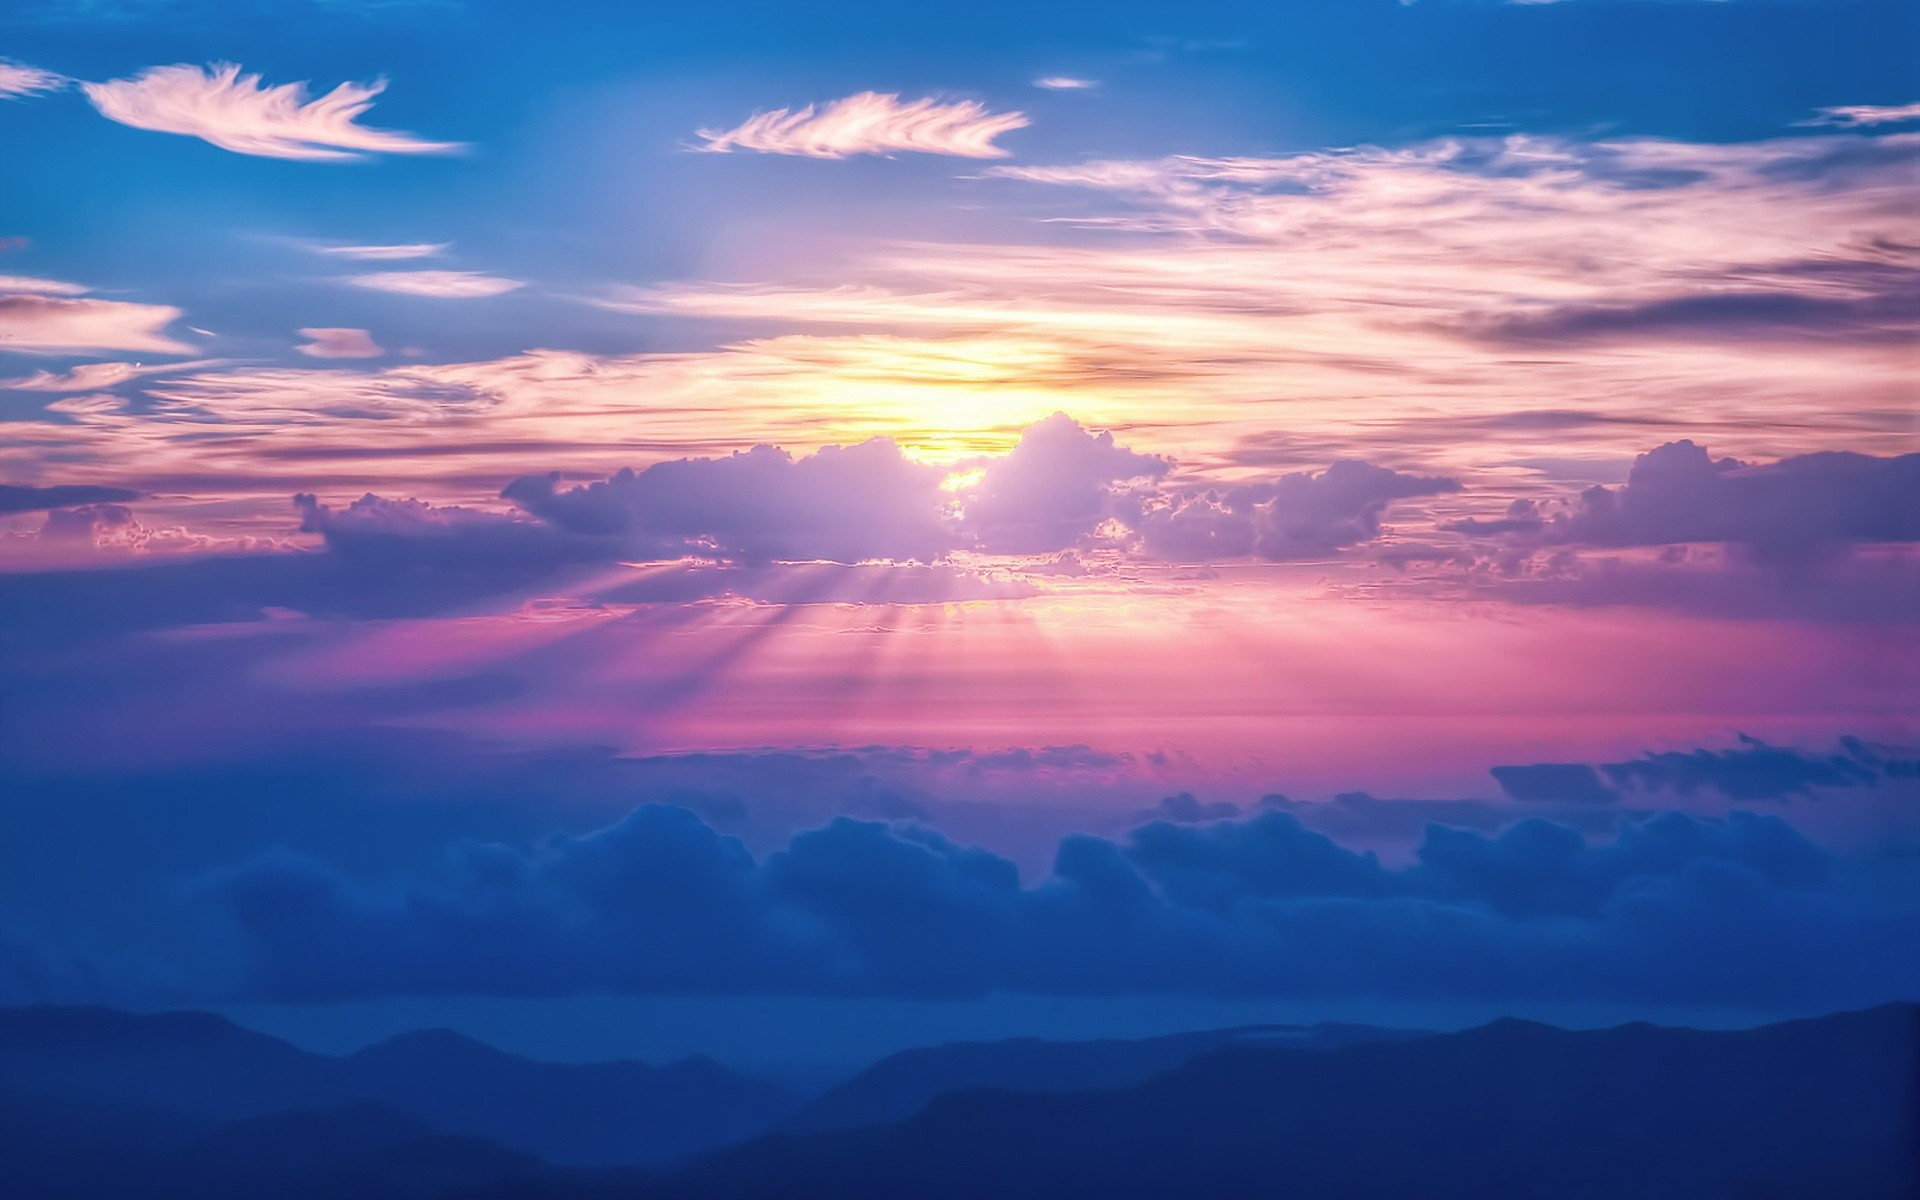 Sunrays Sky Clouds Wallpapers